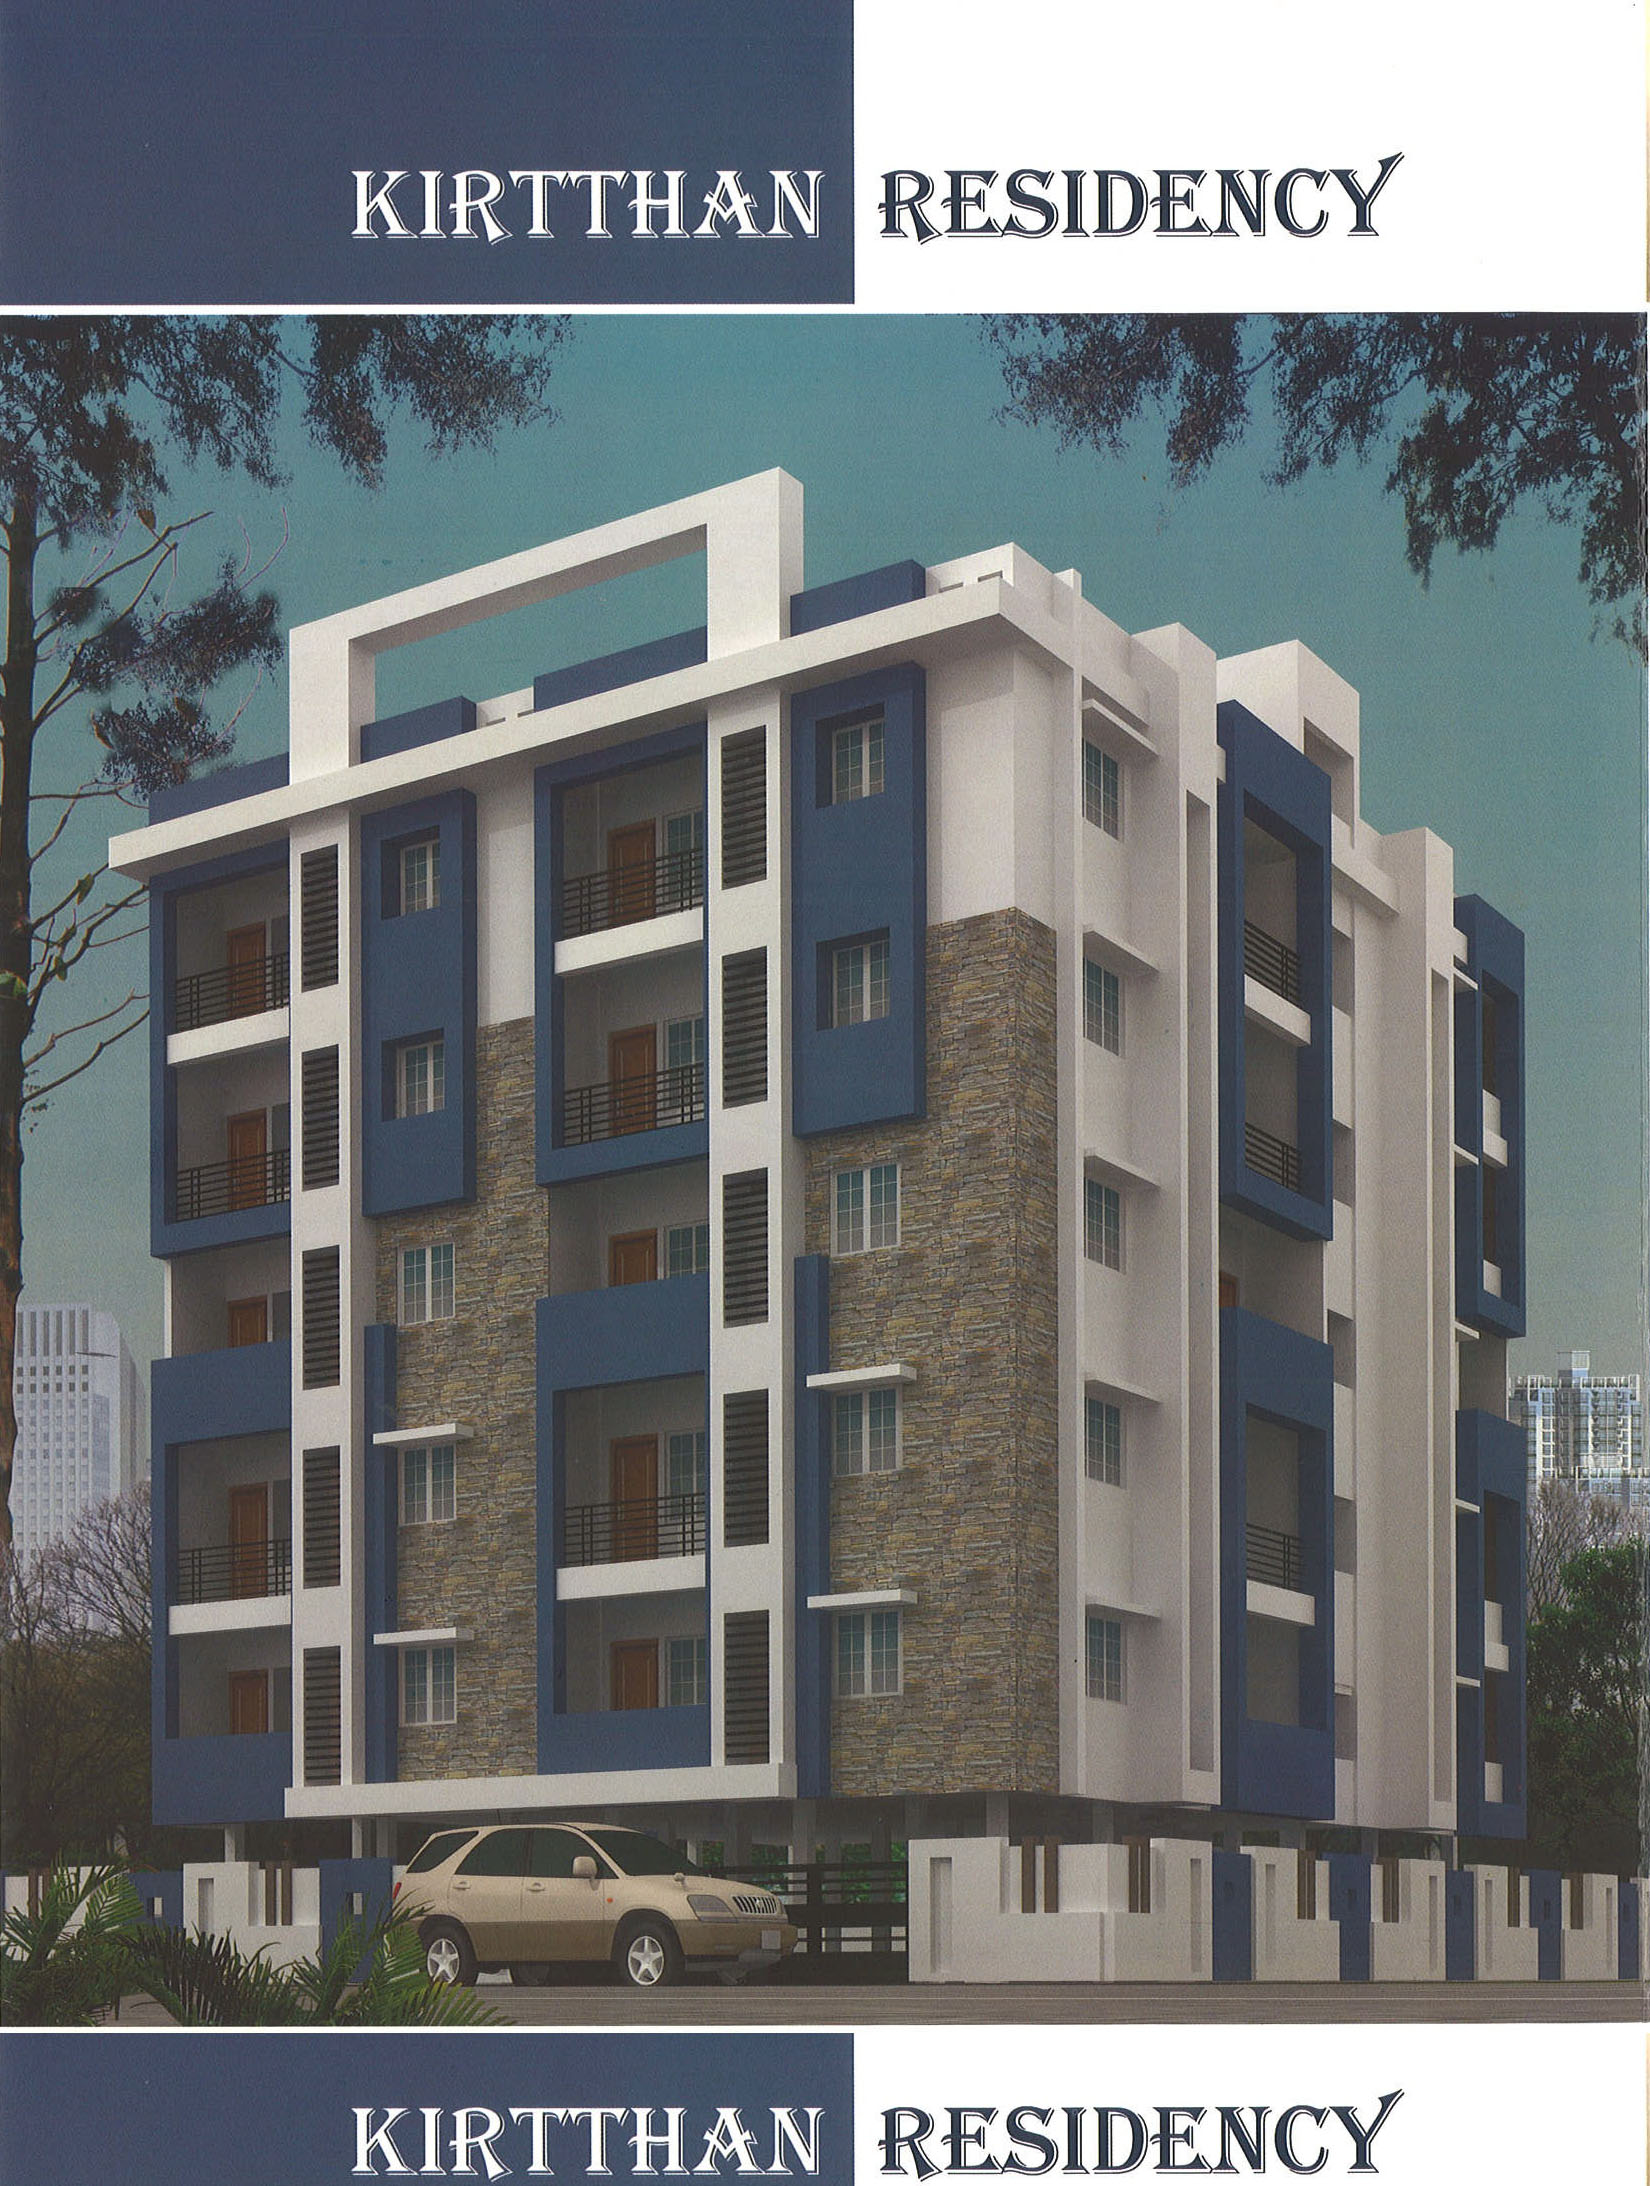 KIRTTHAN RESIDENCY project details - Madhurawada